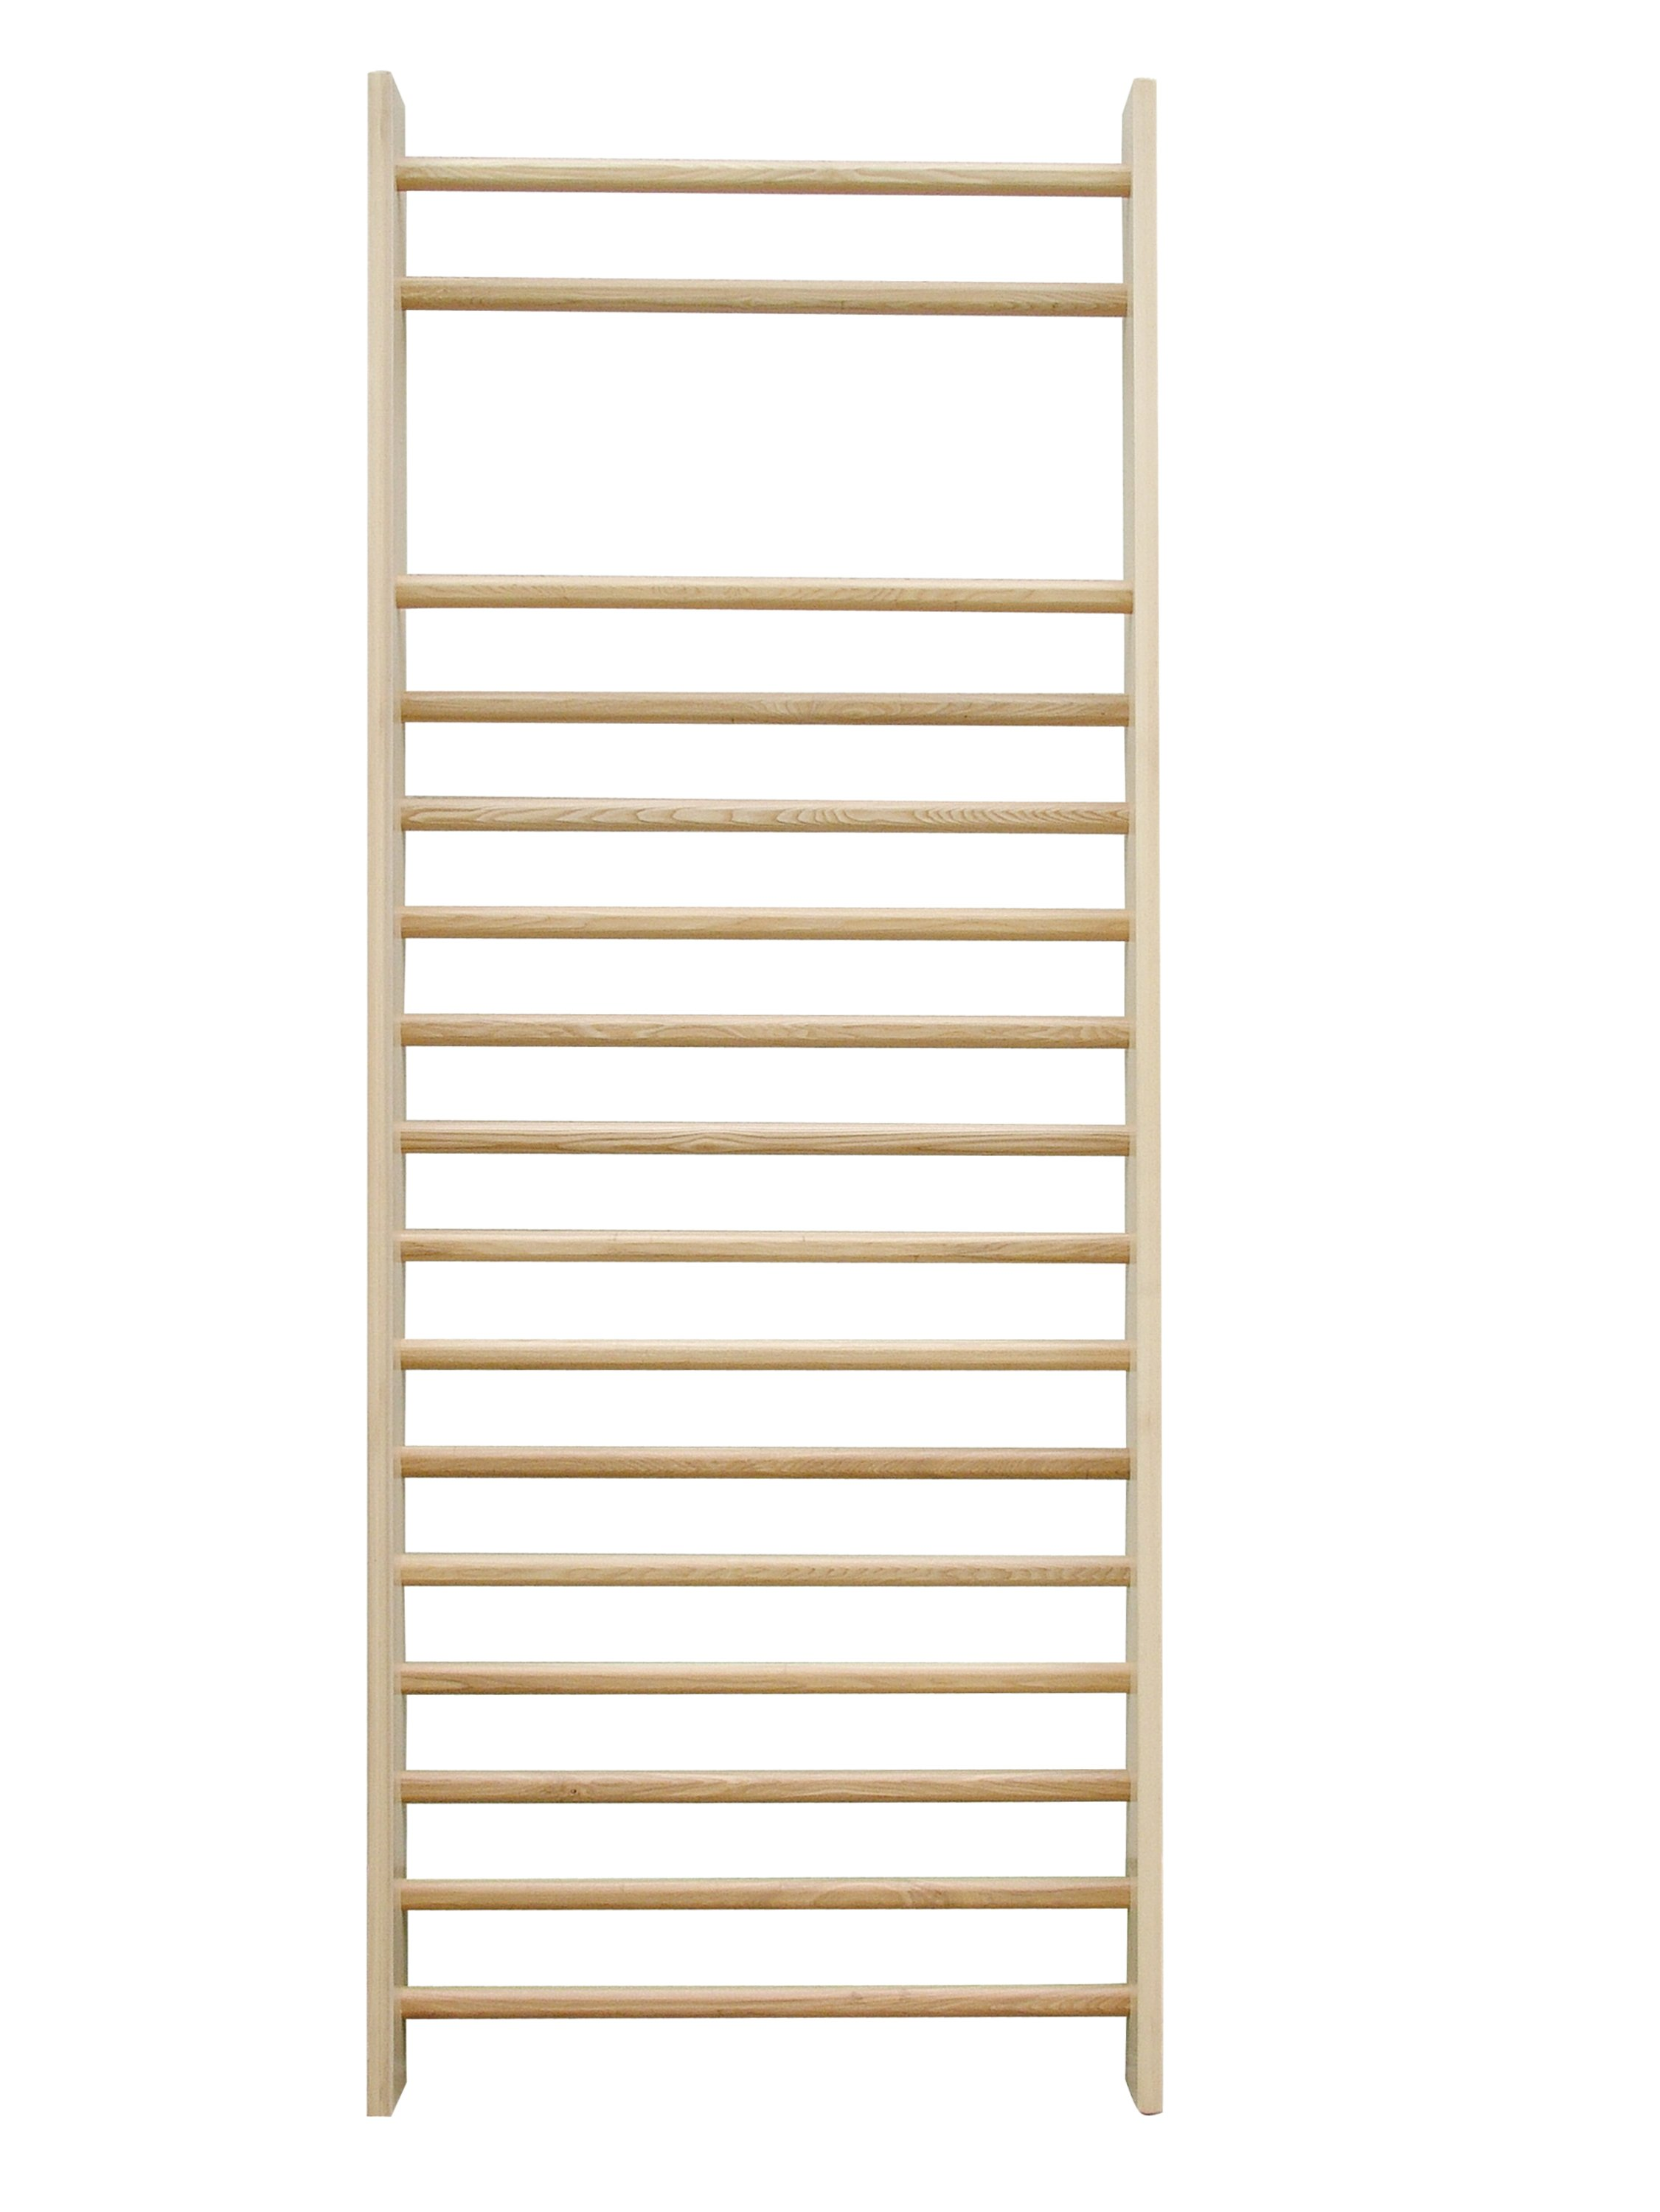 Espalier Simple - 100 x 260 cm - 16 barres - conforme EN12346 (REF MS-50.1)